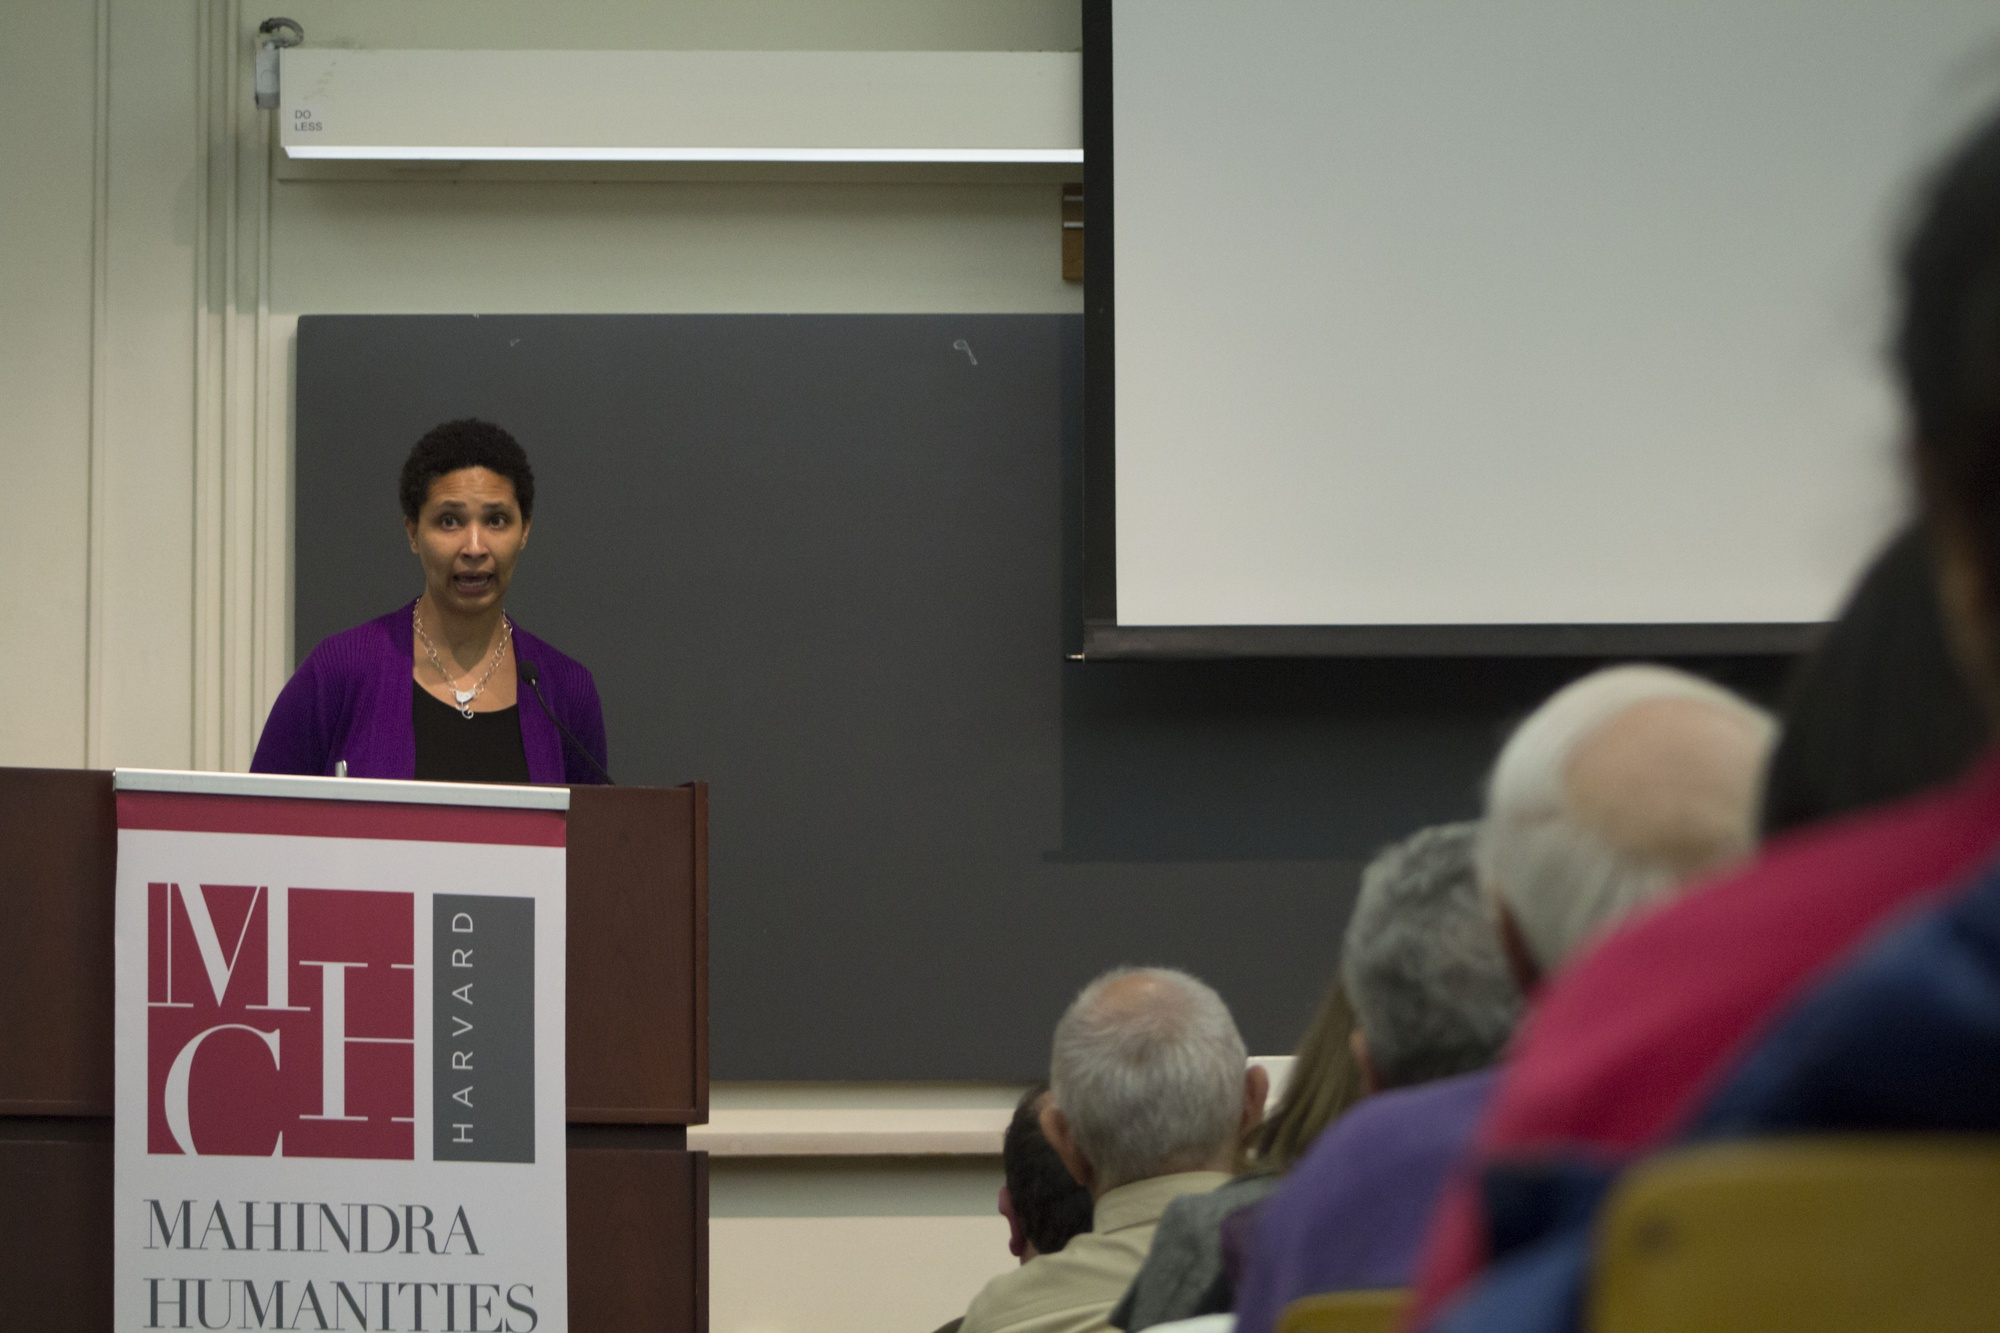 Safra Center for Ethics Director Danielle S. Allen read from her op-ed published in the Washington Post today in reflection on the recent presidential election. She spoke at a Mahindra Center event where fellow scholars Jill Lepore and David I. Laibson '88 also shared their takes on Trump's election.